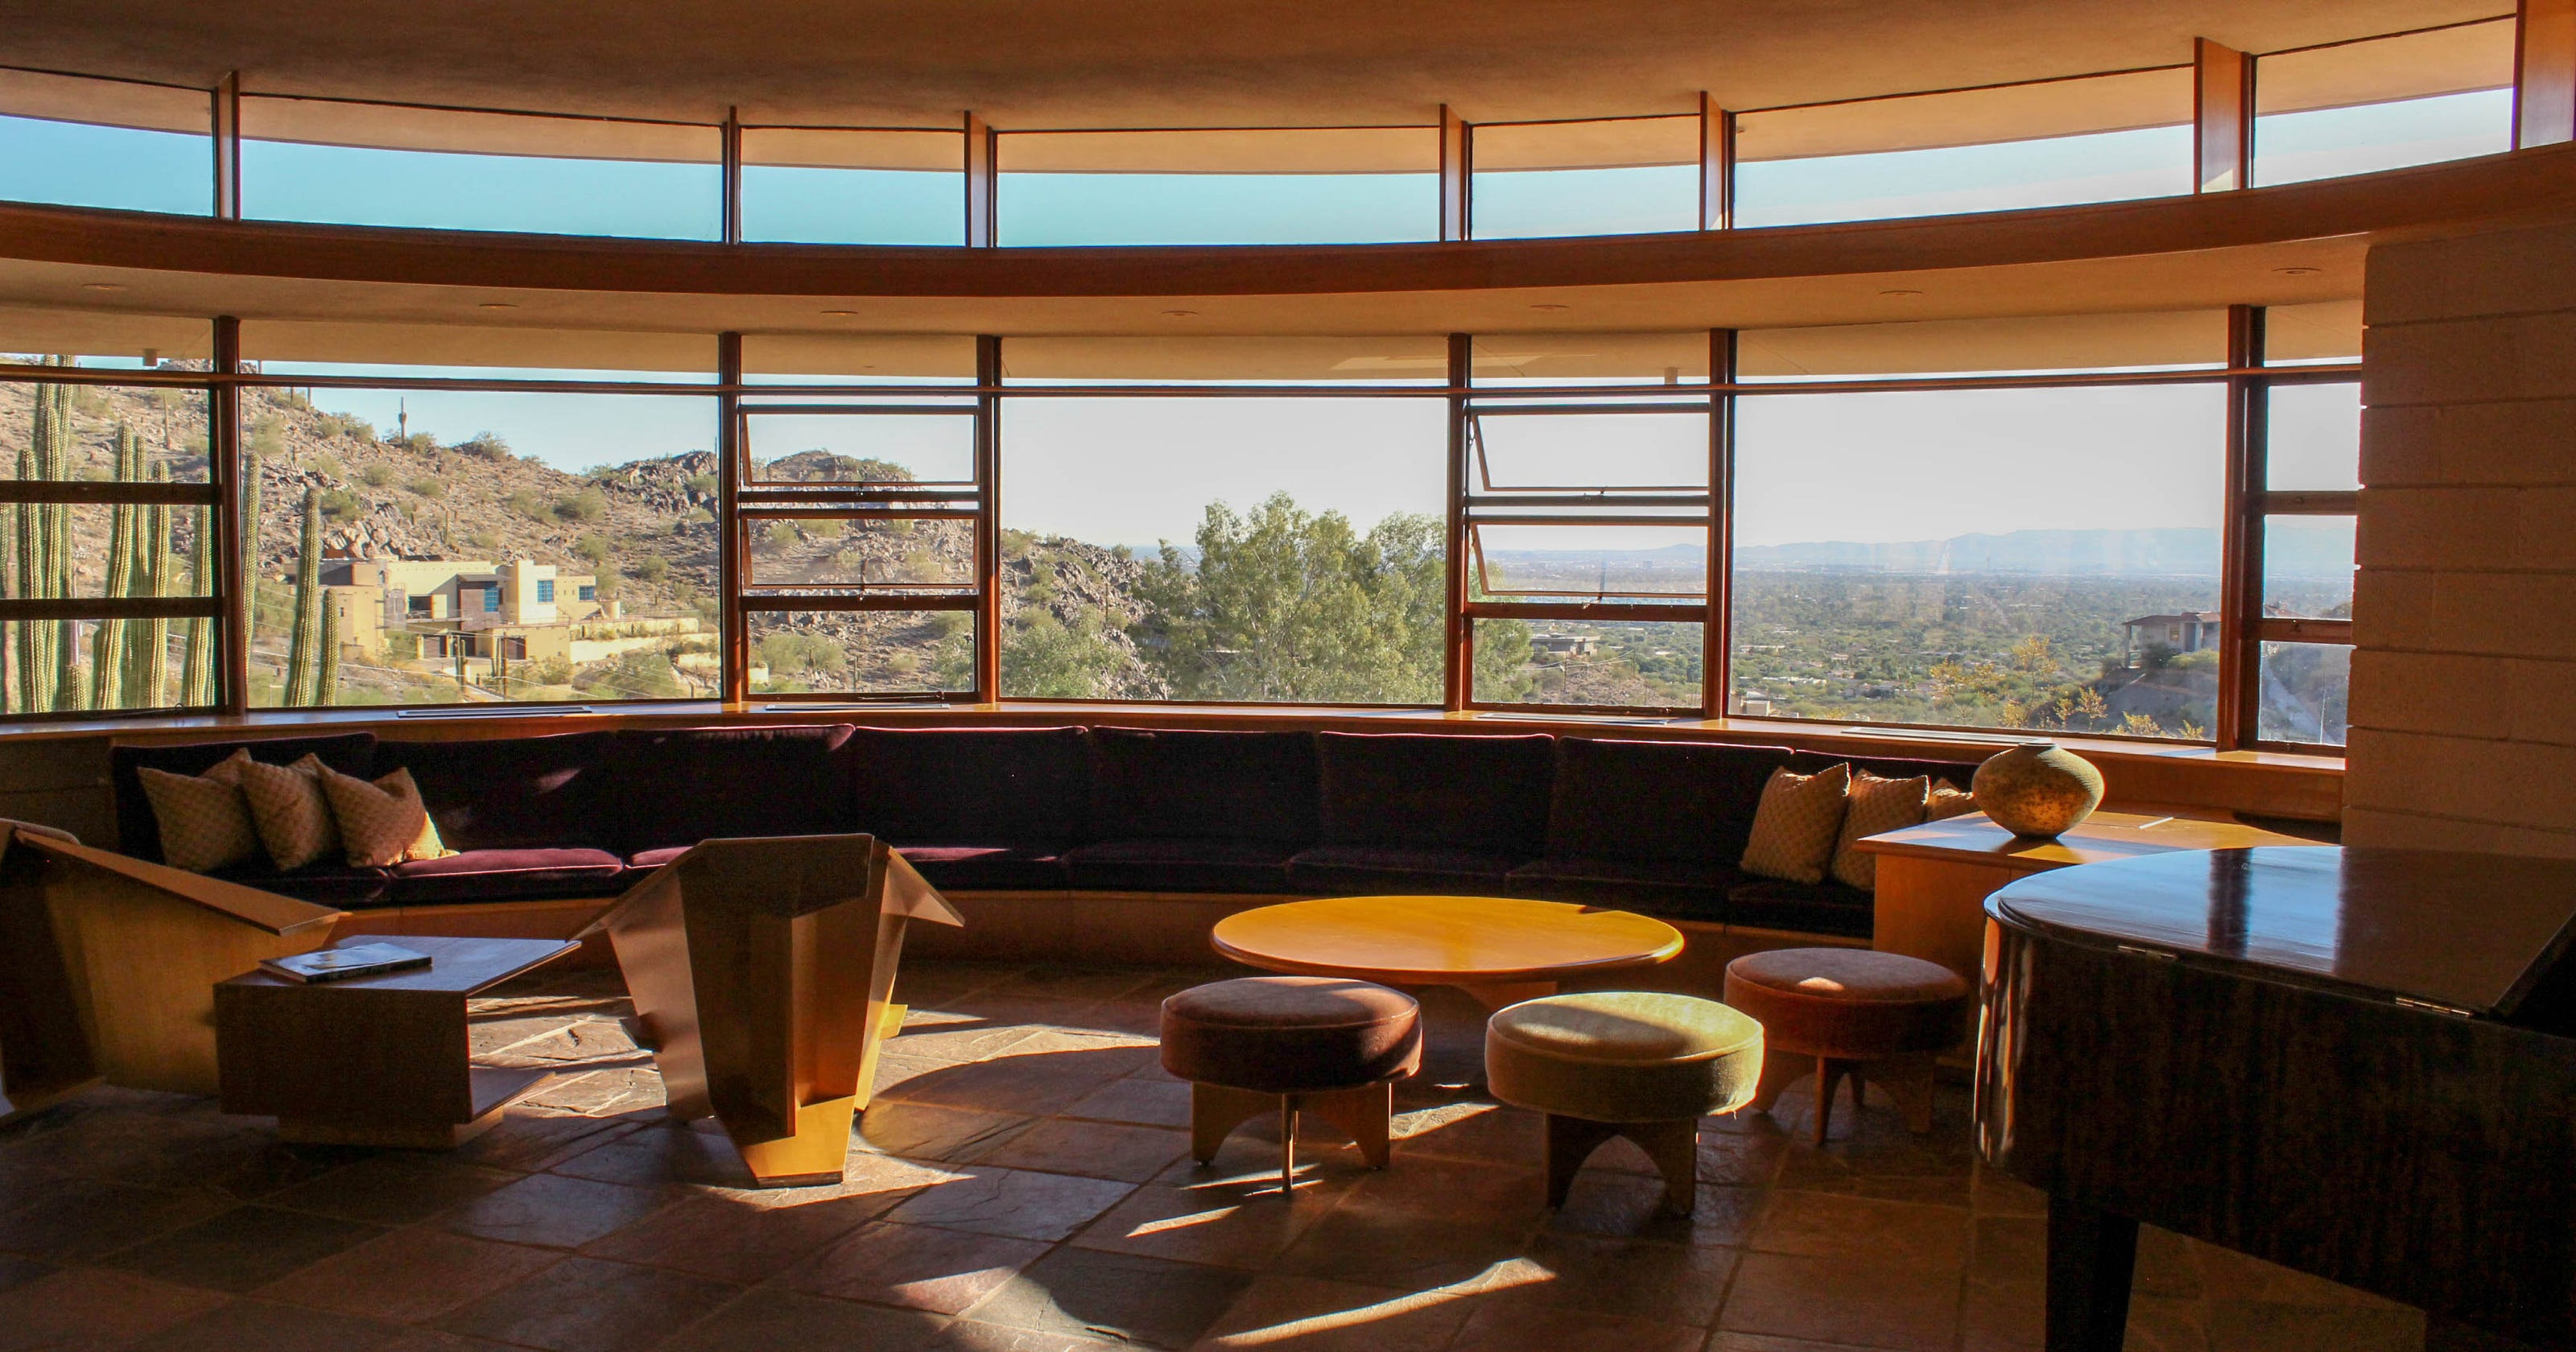 Iconic frank lloyd wright designed house for sale in - Frank lloyd wright houses for sale ...